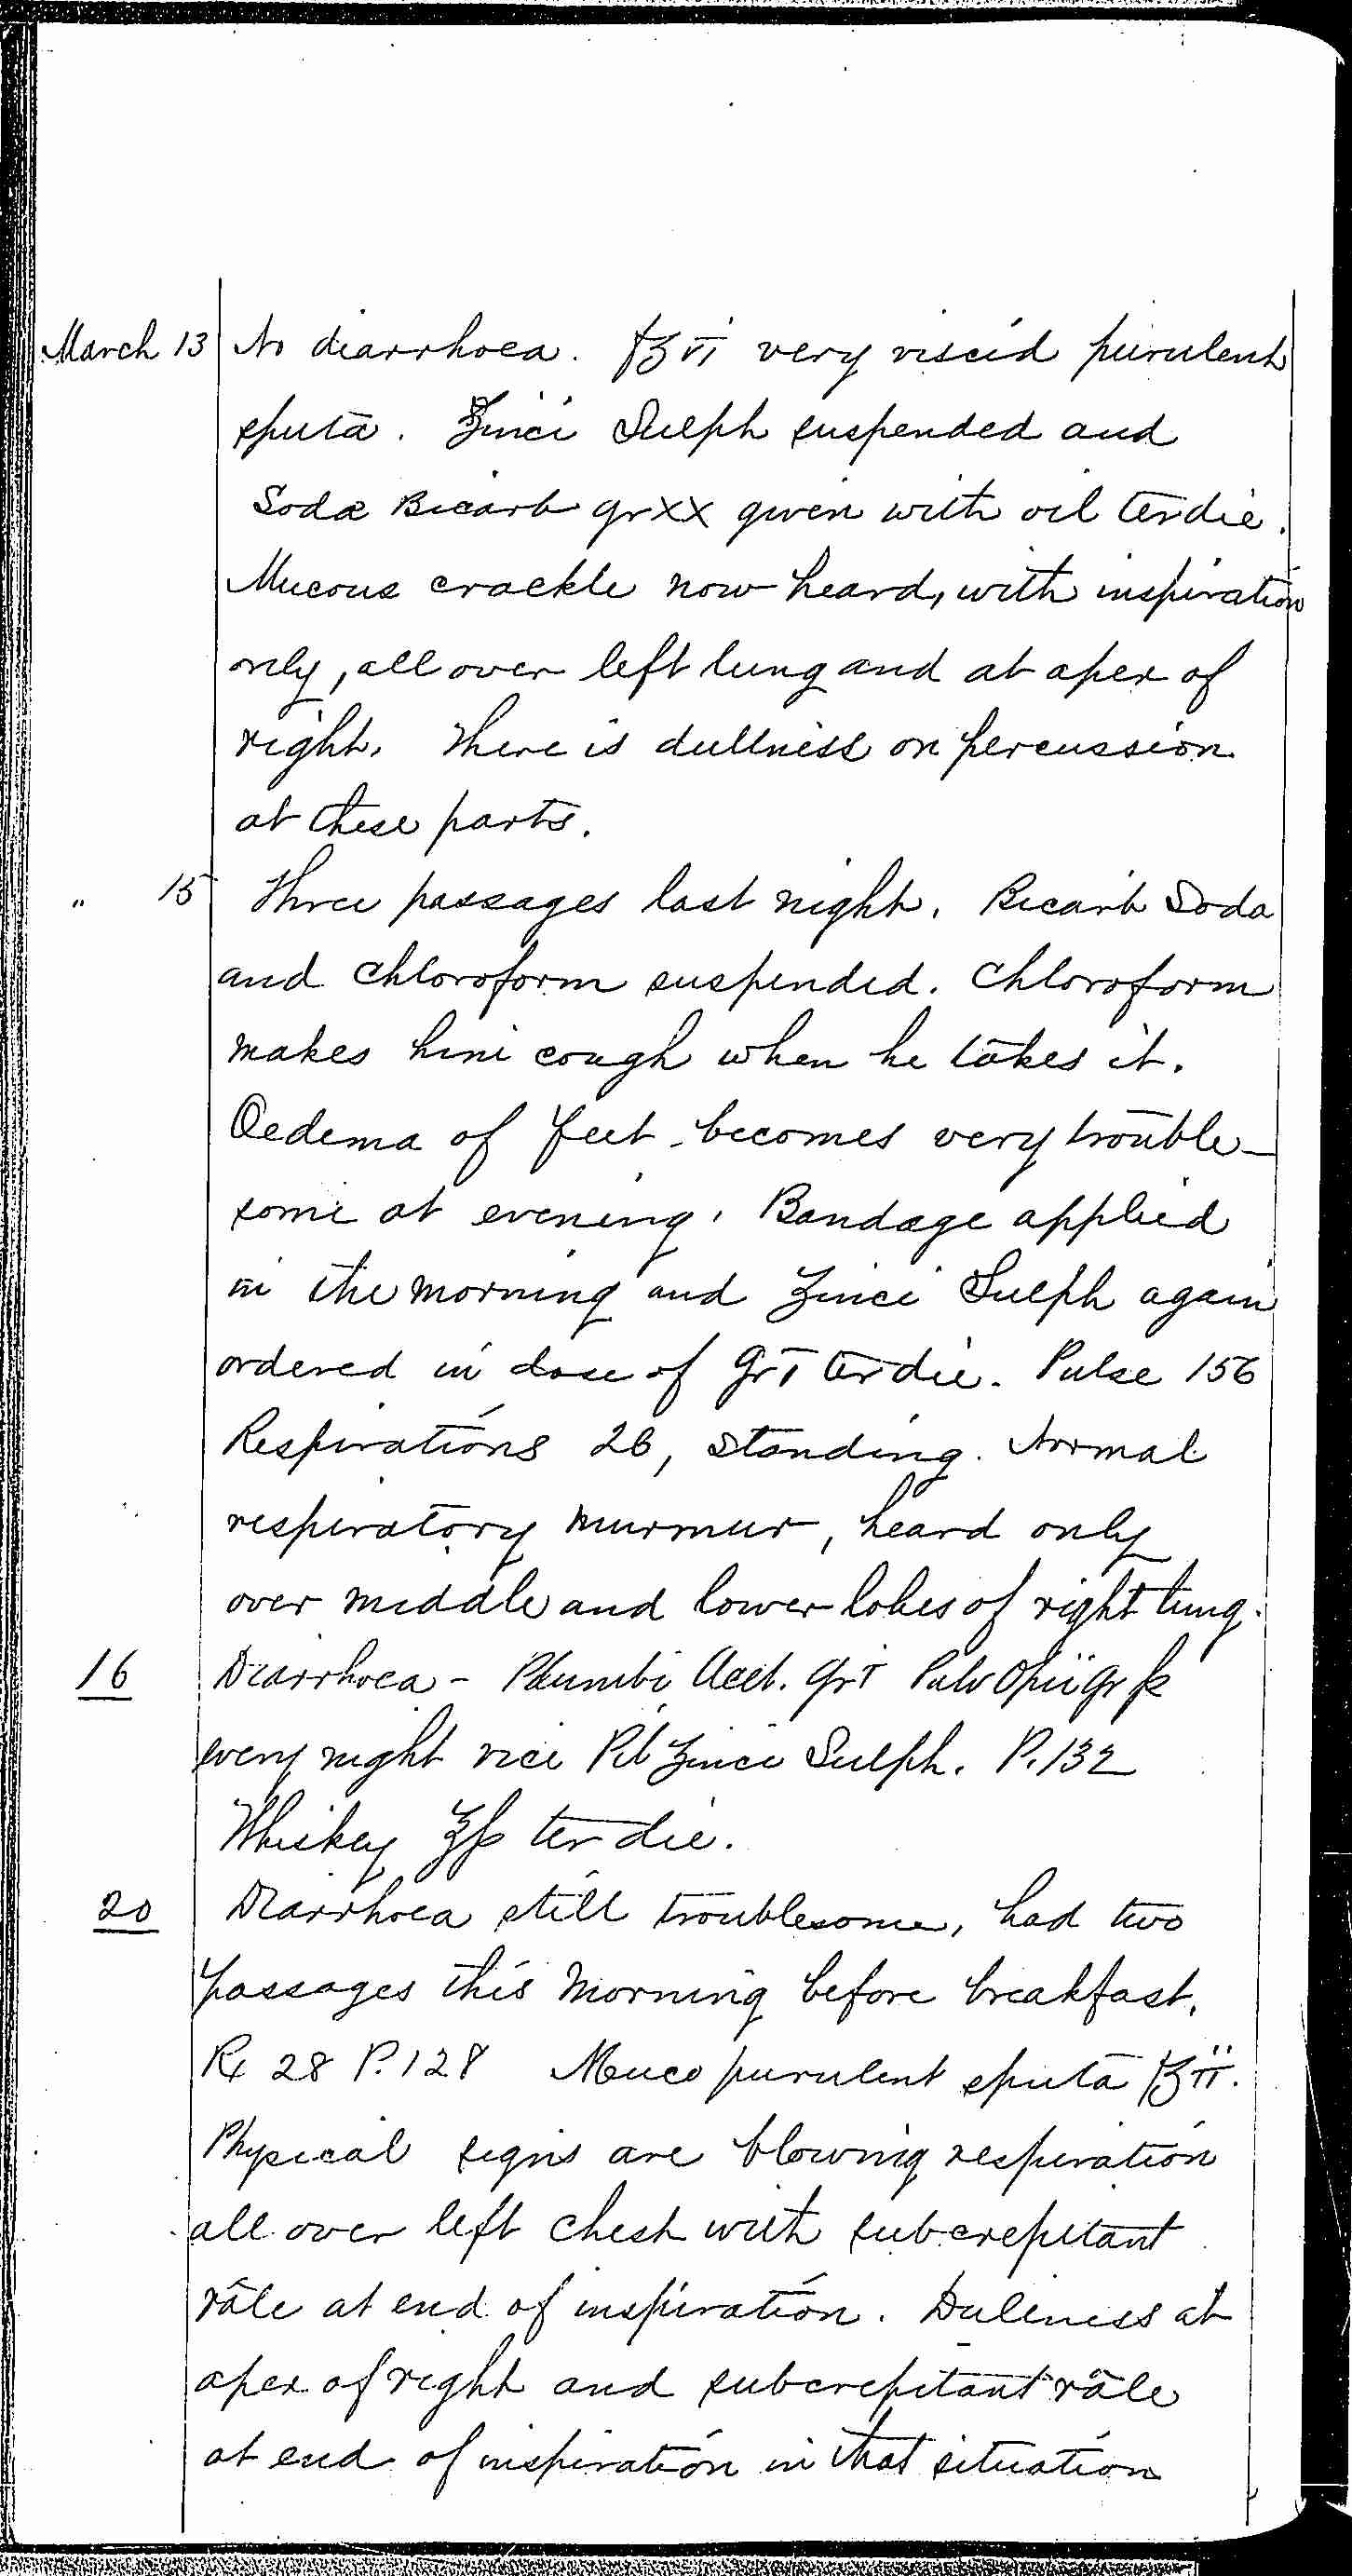 Entry for William Bathwell (page 10 of 13) in the log Hospital Tickets and Case Papers - Naval Hospital - Washington, D.C. - 1868-69